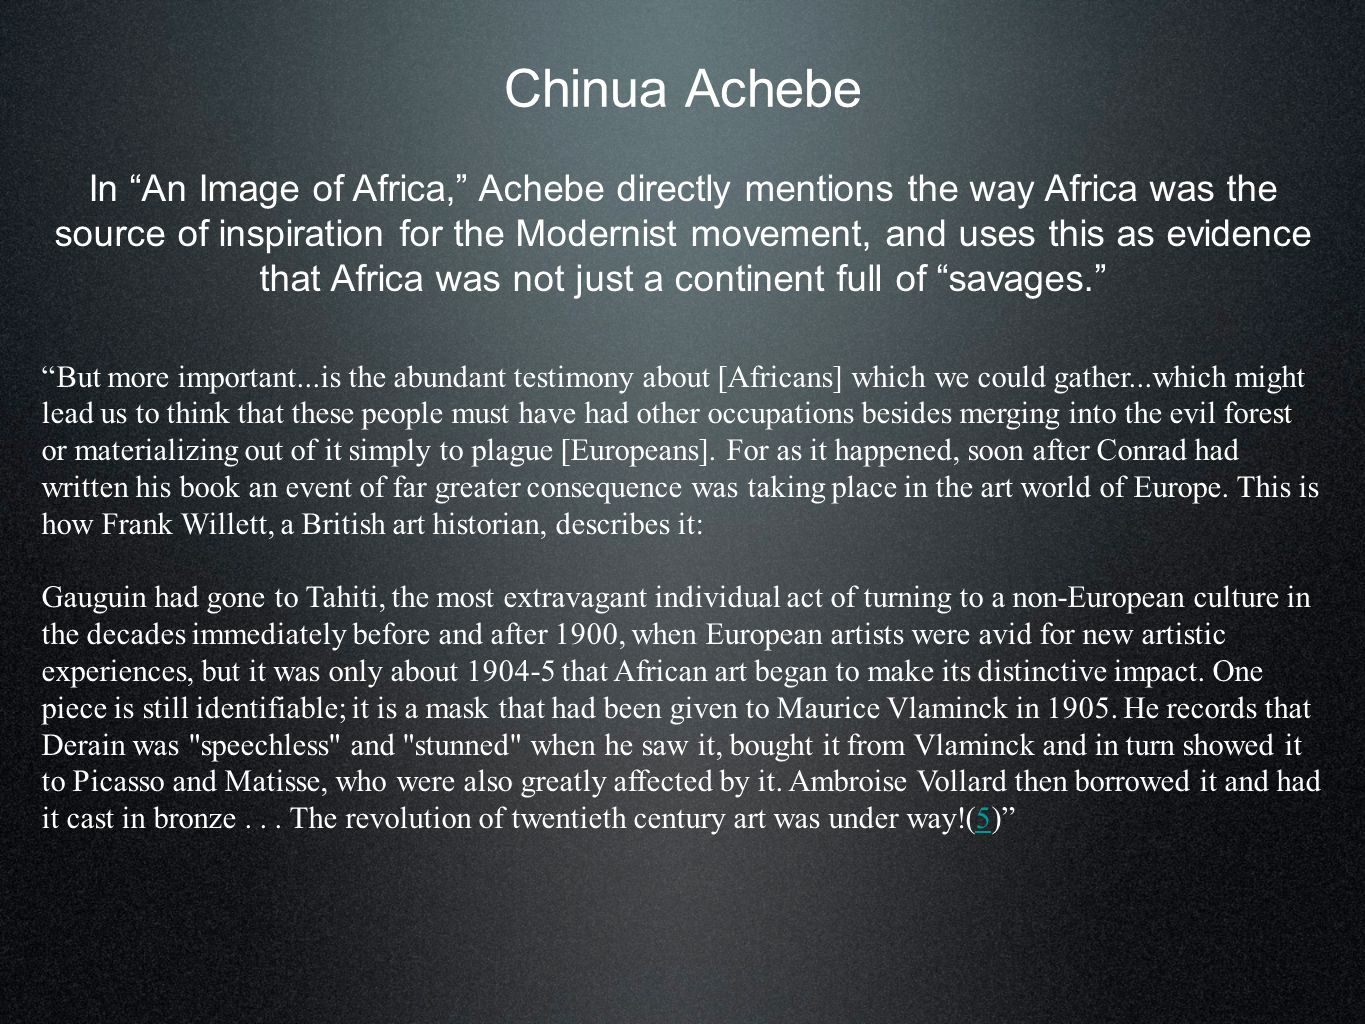 Chinua Achebe In An Image of Africa, Achebe directly mentions the way Africa was the source of inspiration for the Modernist movement, and uses this as evidence that Africa was not just a continent full of savages. But more important...is the abundant testimony about [Africans] which we could gather...which might lead us to think that these people must have had other occupations besides merging into the evil forest or materializing out of it simply to plague [Europeans].